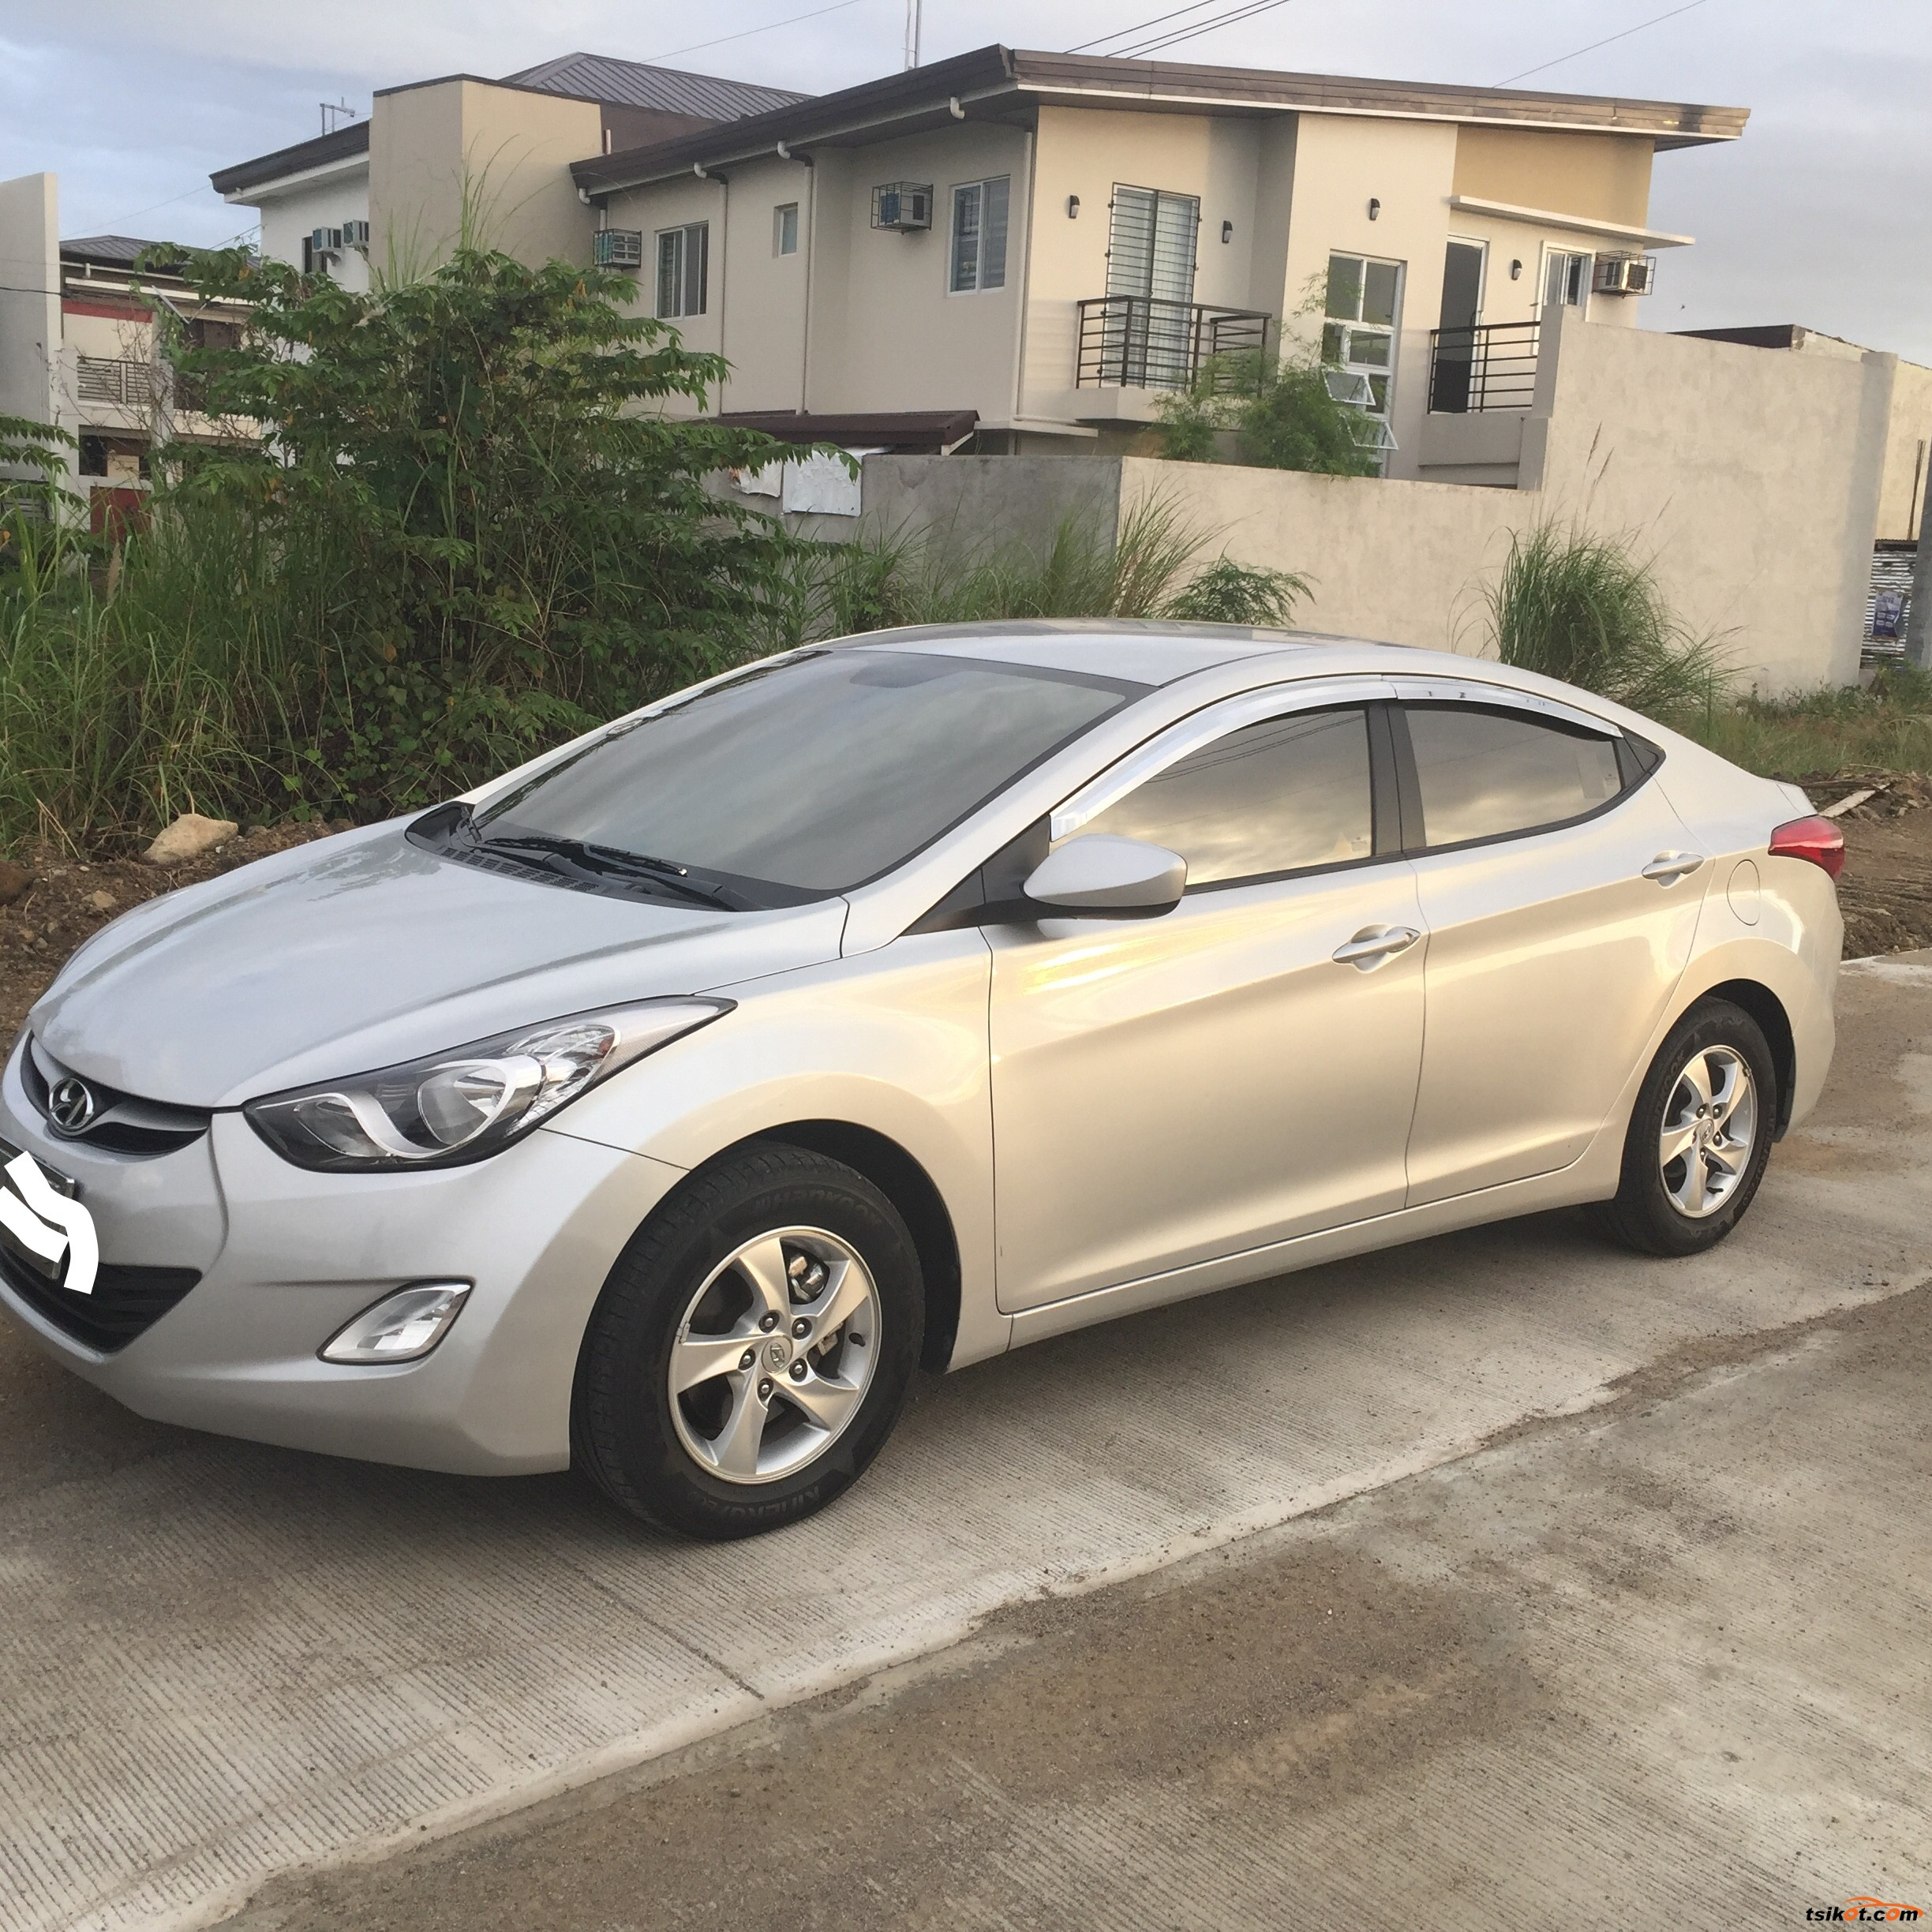 hyundai elantra 2012 car for sale metro manila. Black Bedroom Furniture Sets. Home Design Ideas